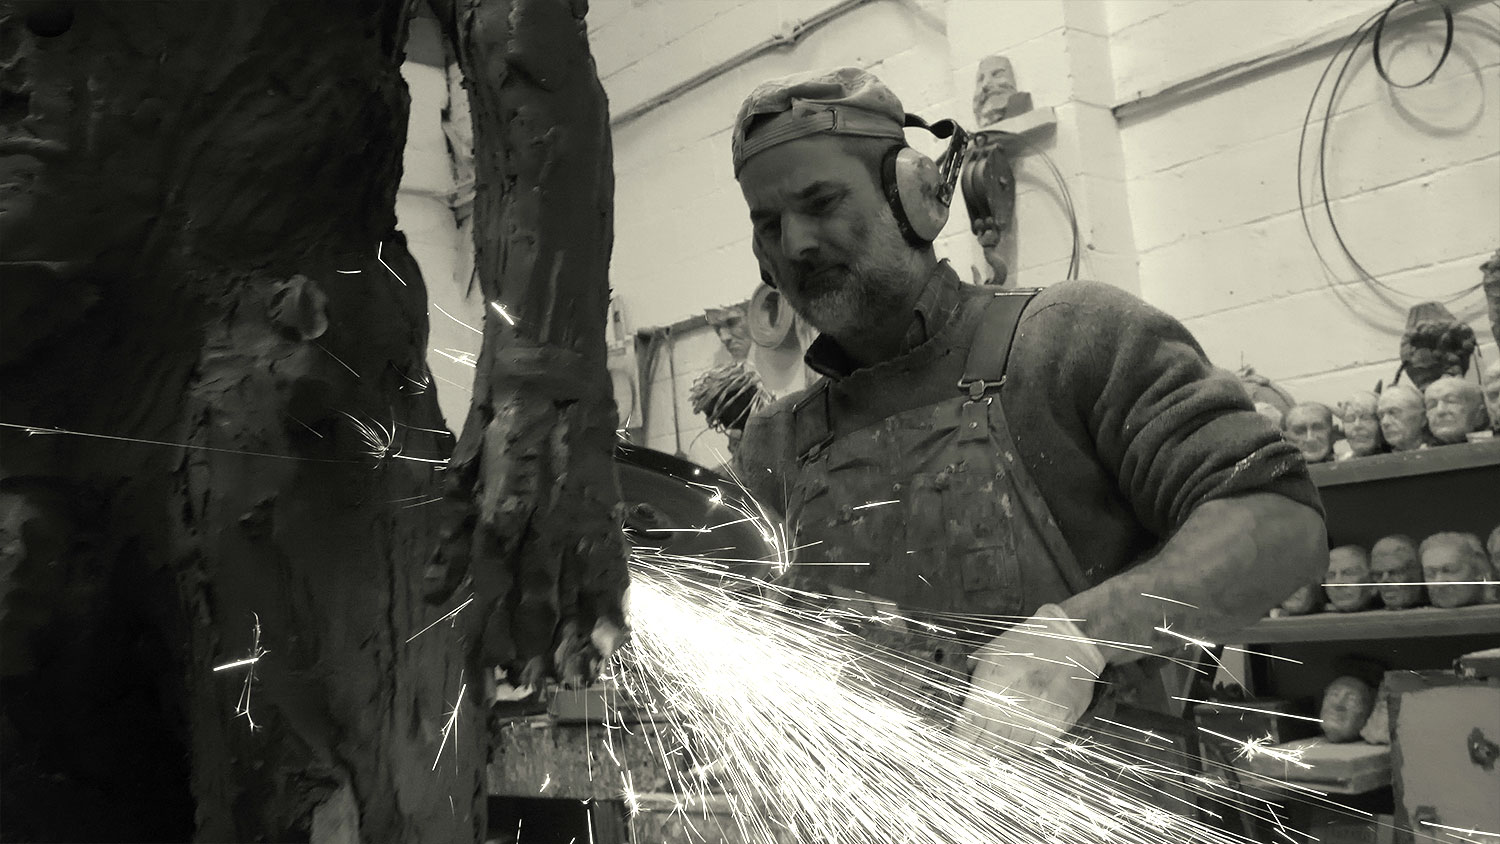 Welding the armature